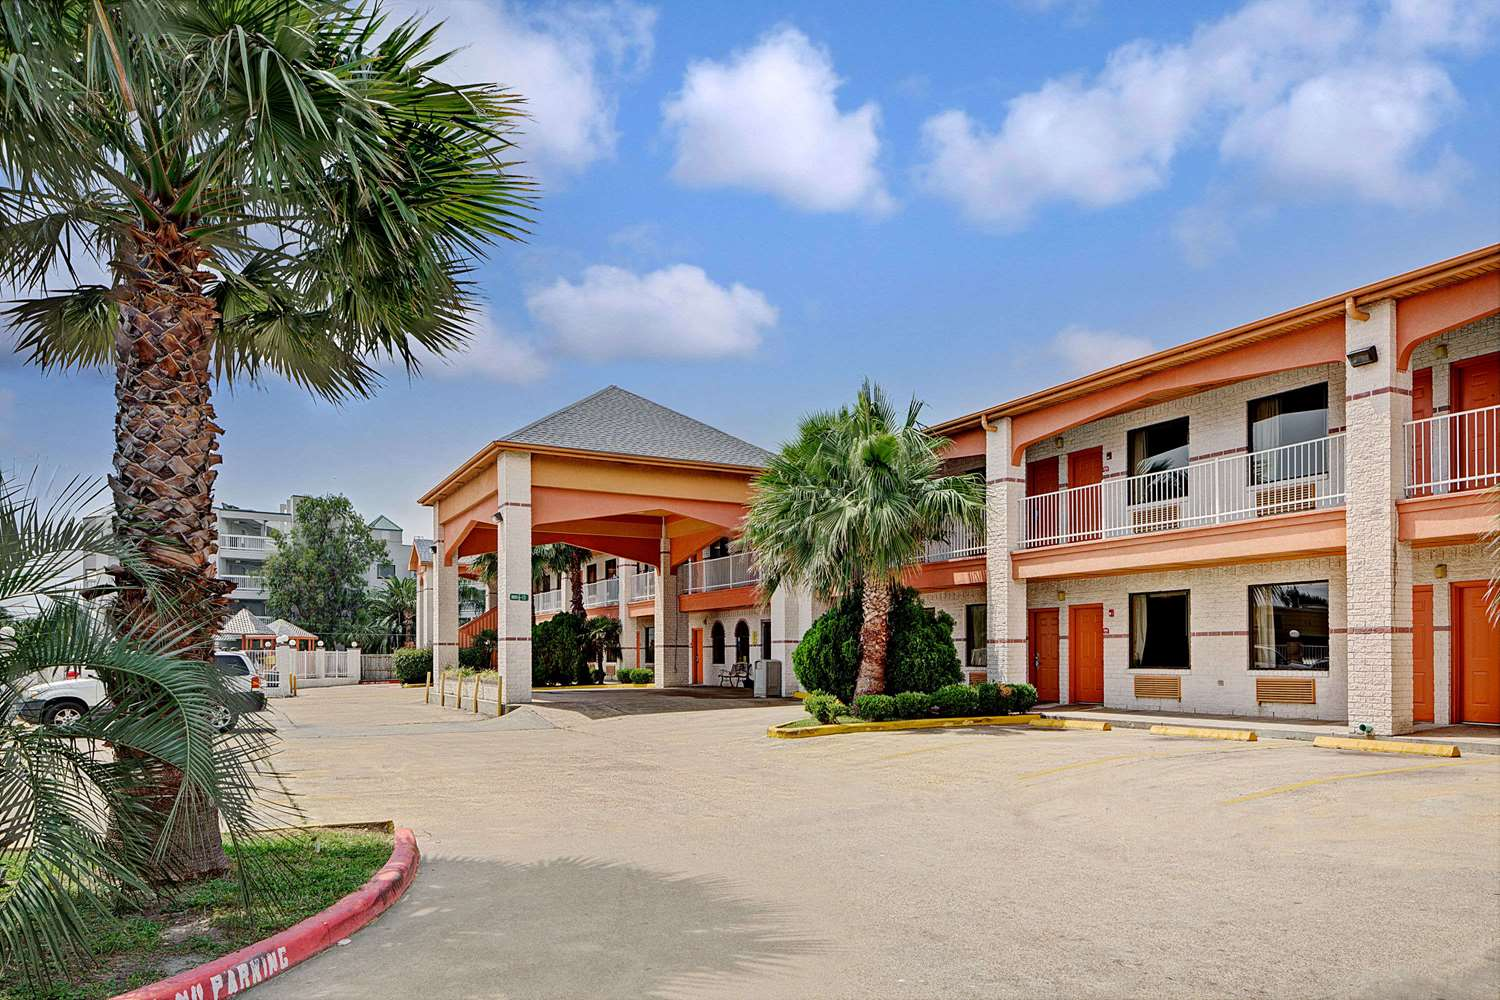 Galveston hotels and motels near moody gardens galveston tx - Hotels near moody gardens in galveston ...